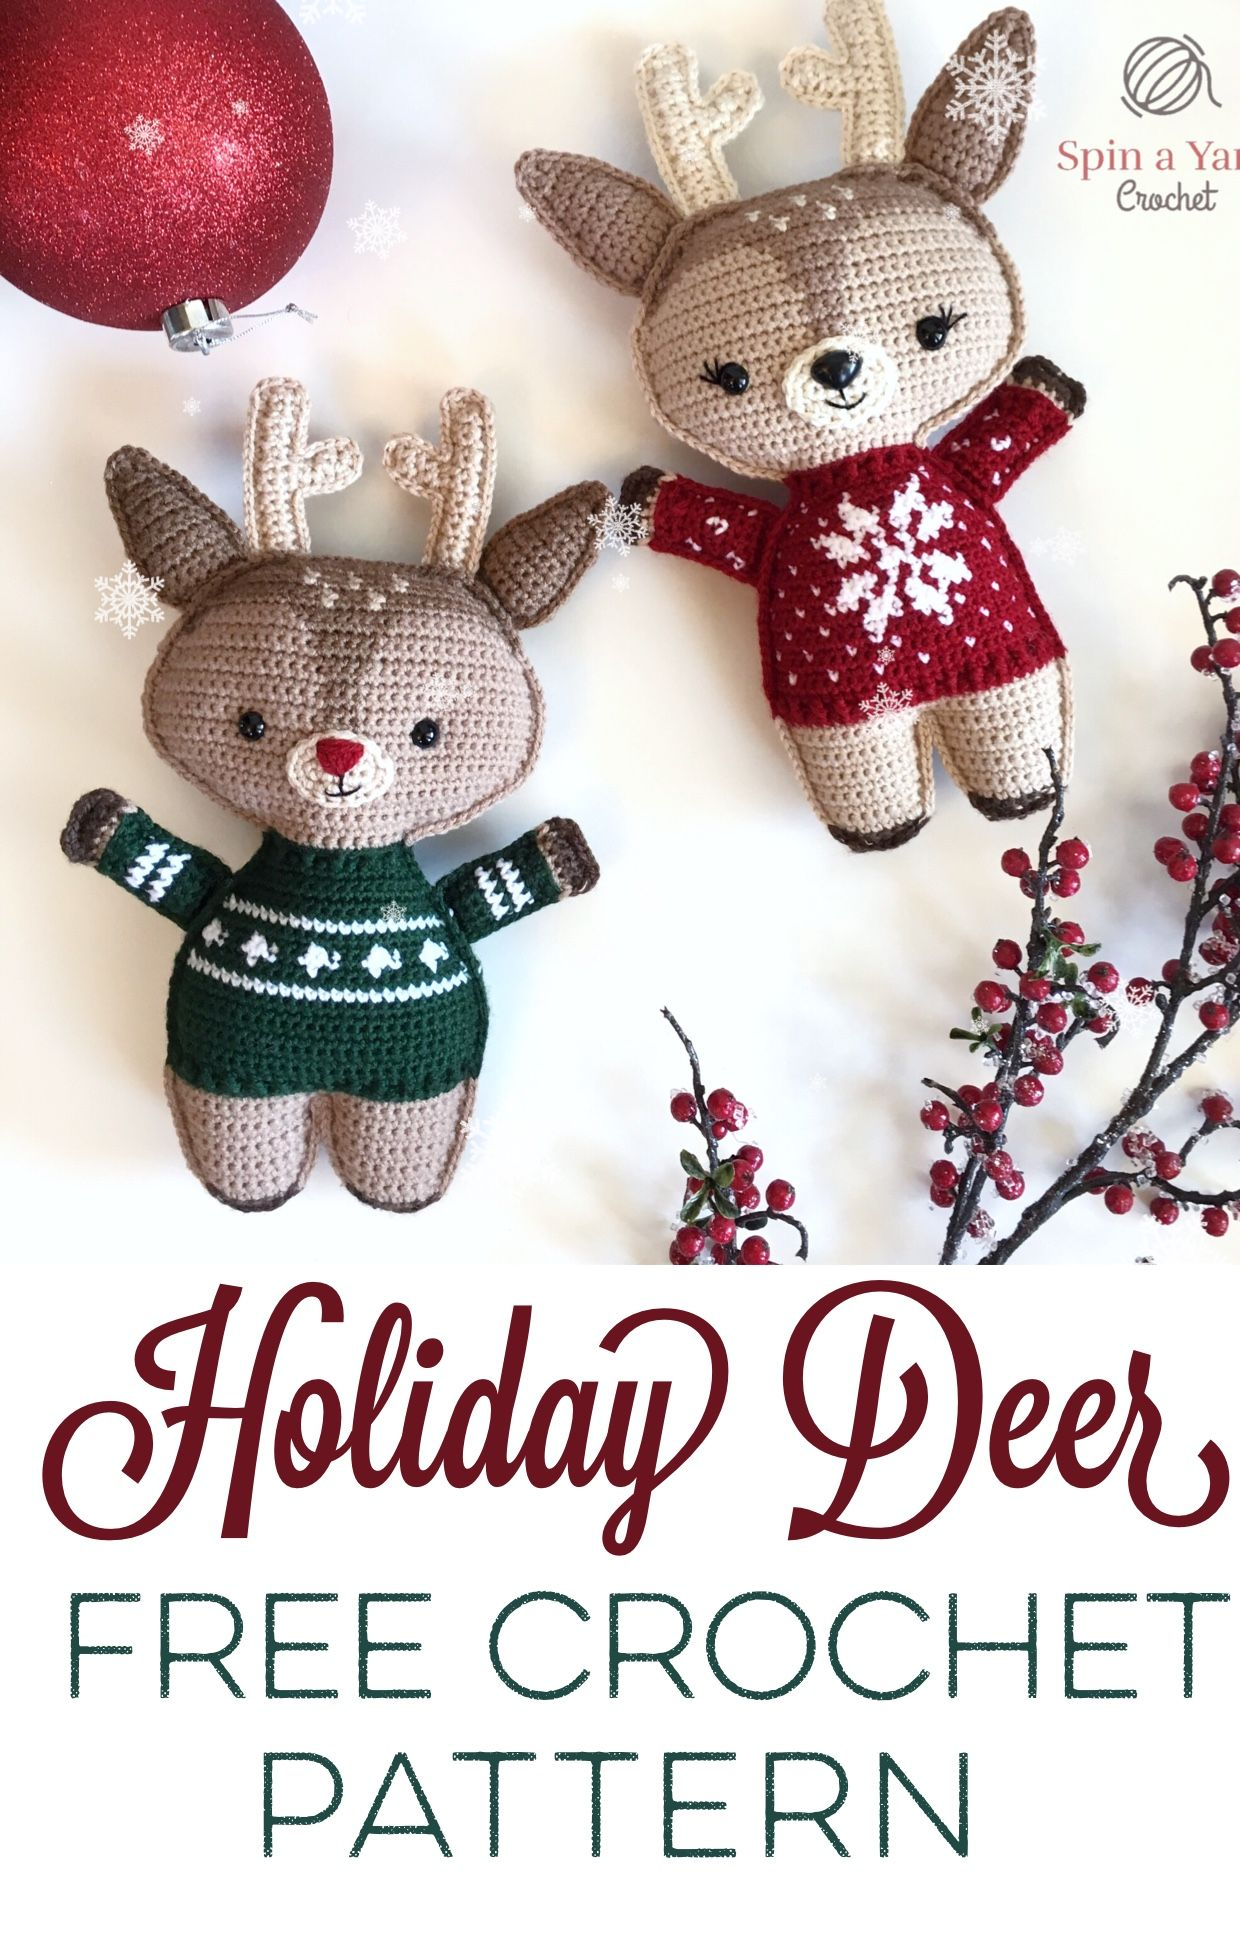 Holiday Deer - Spin a Yarn Crochet | Knitt and crochet | Pinterest ...